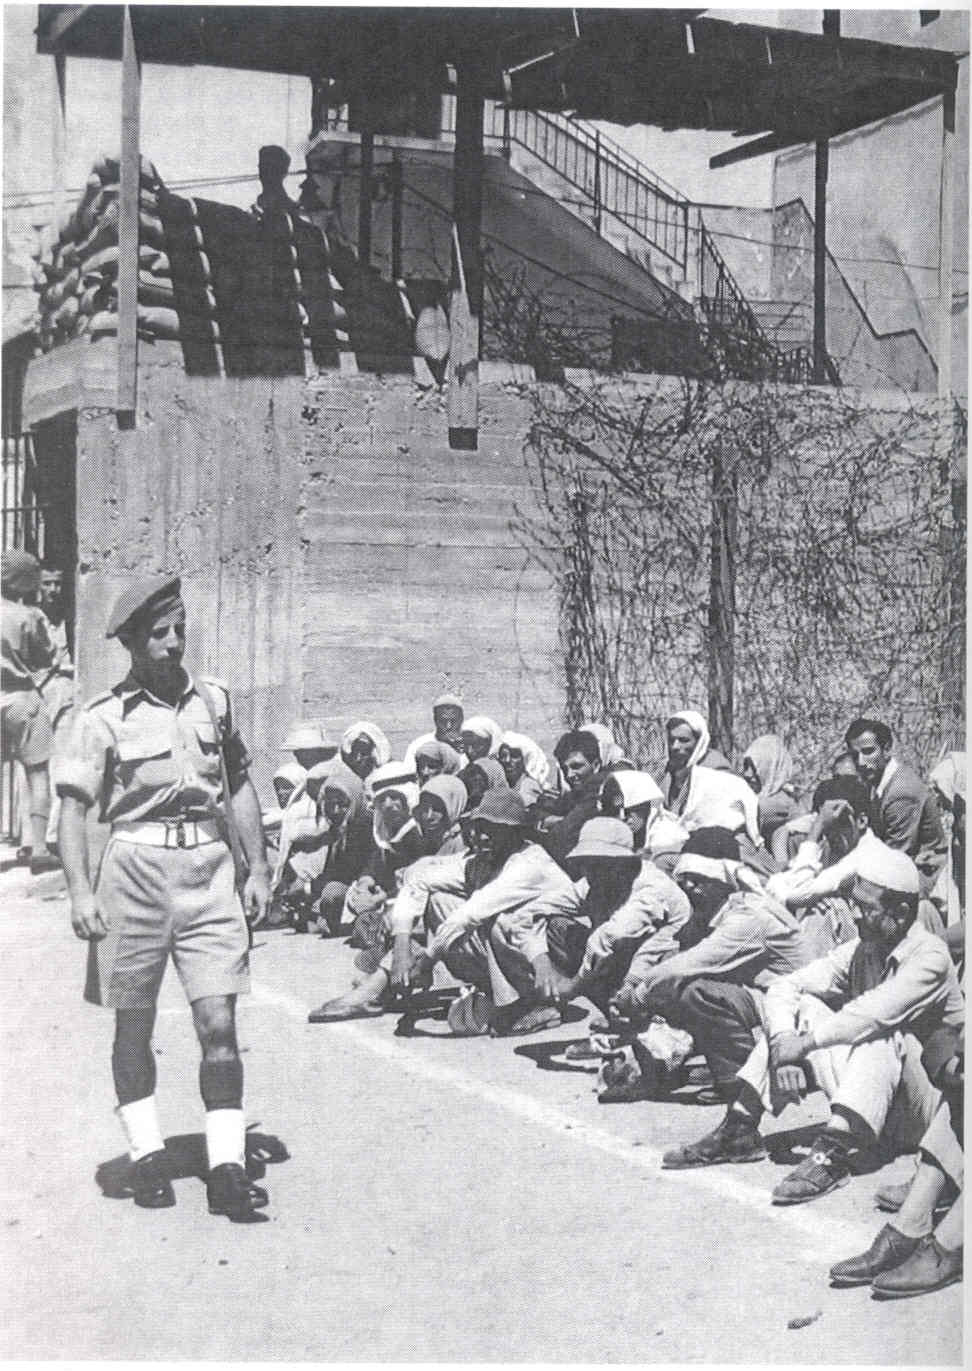 Acre - عكا : Palestinian civilians taken as prisoners of war soon Acre's occupation, May 1948